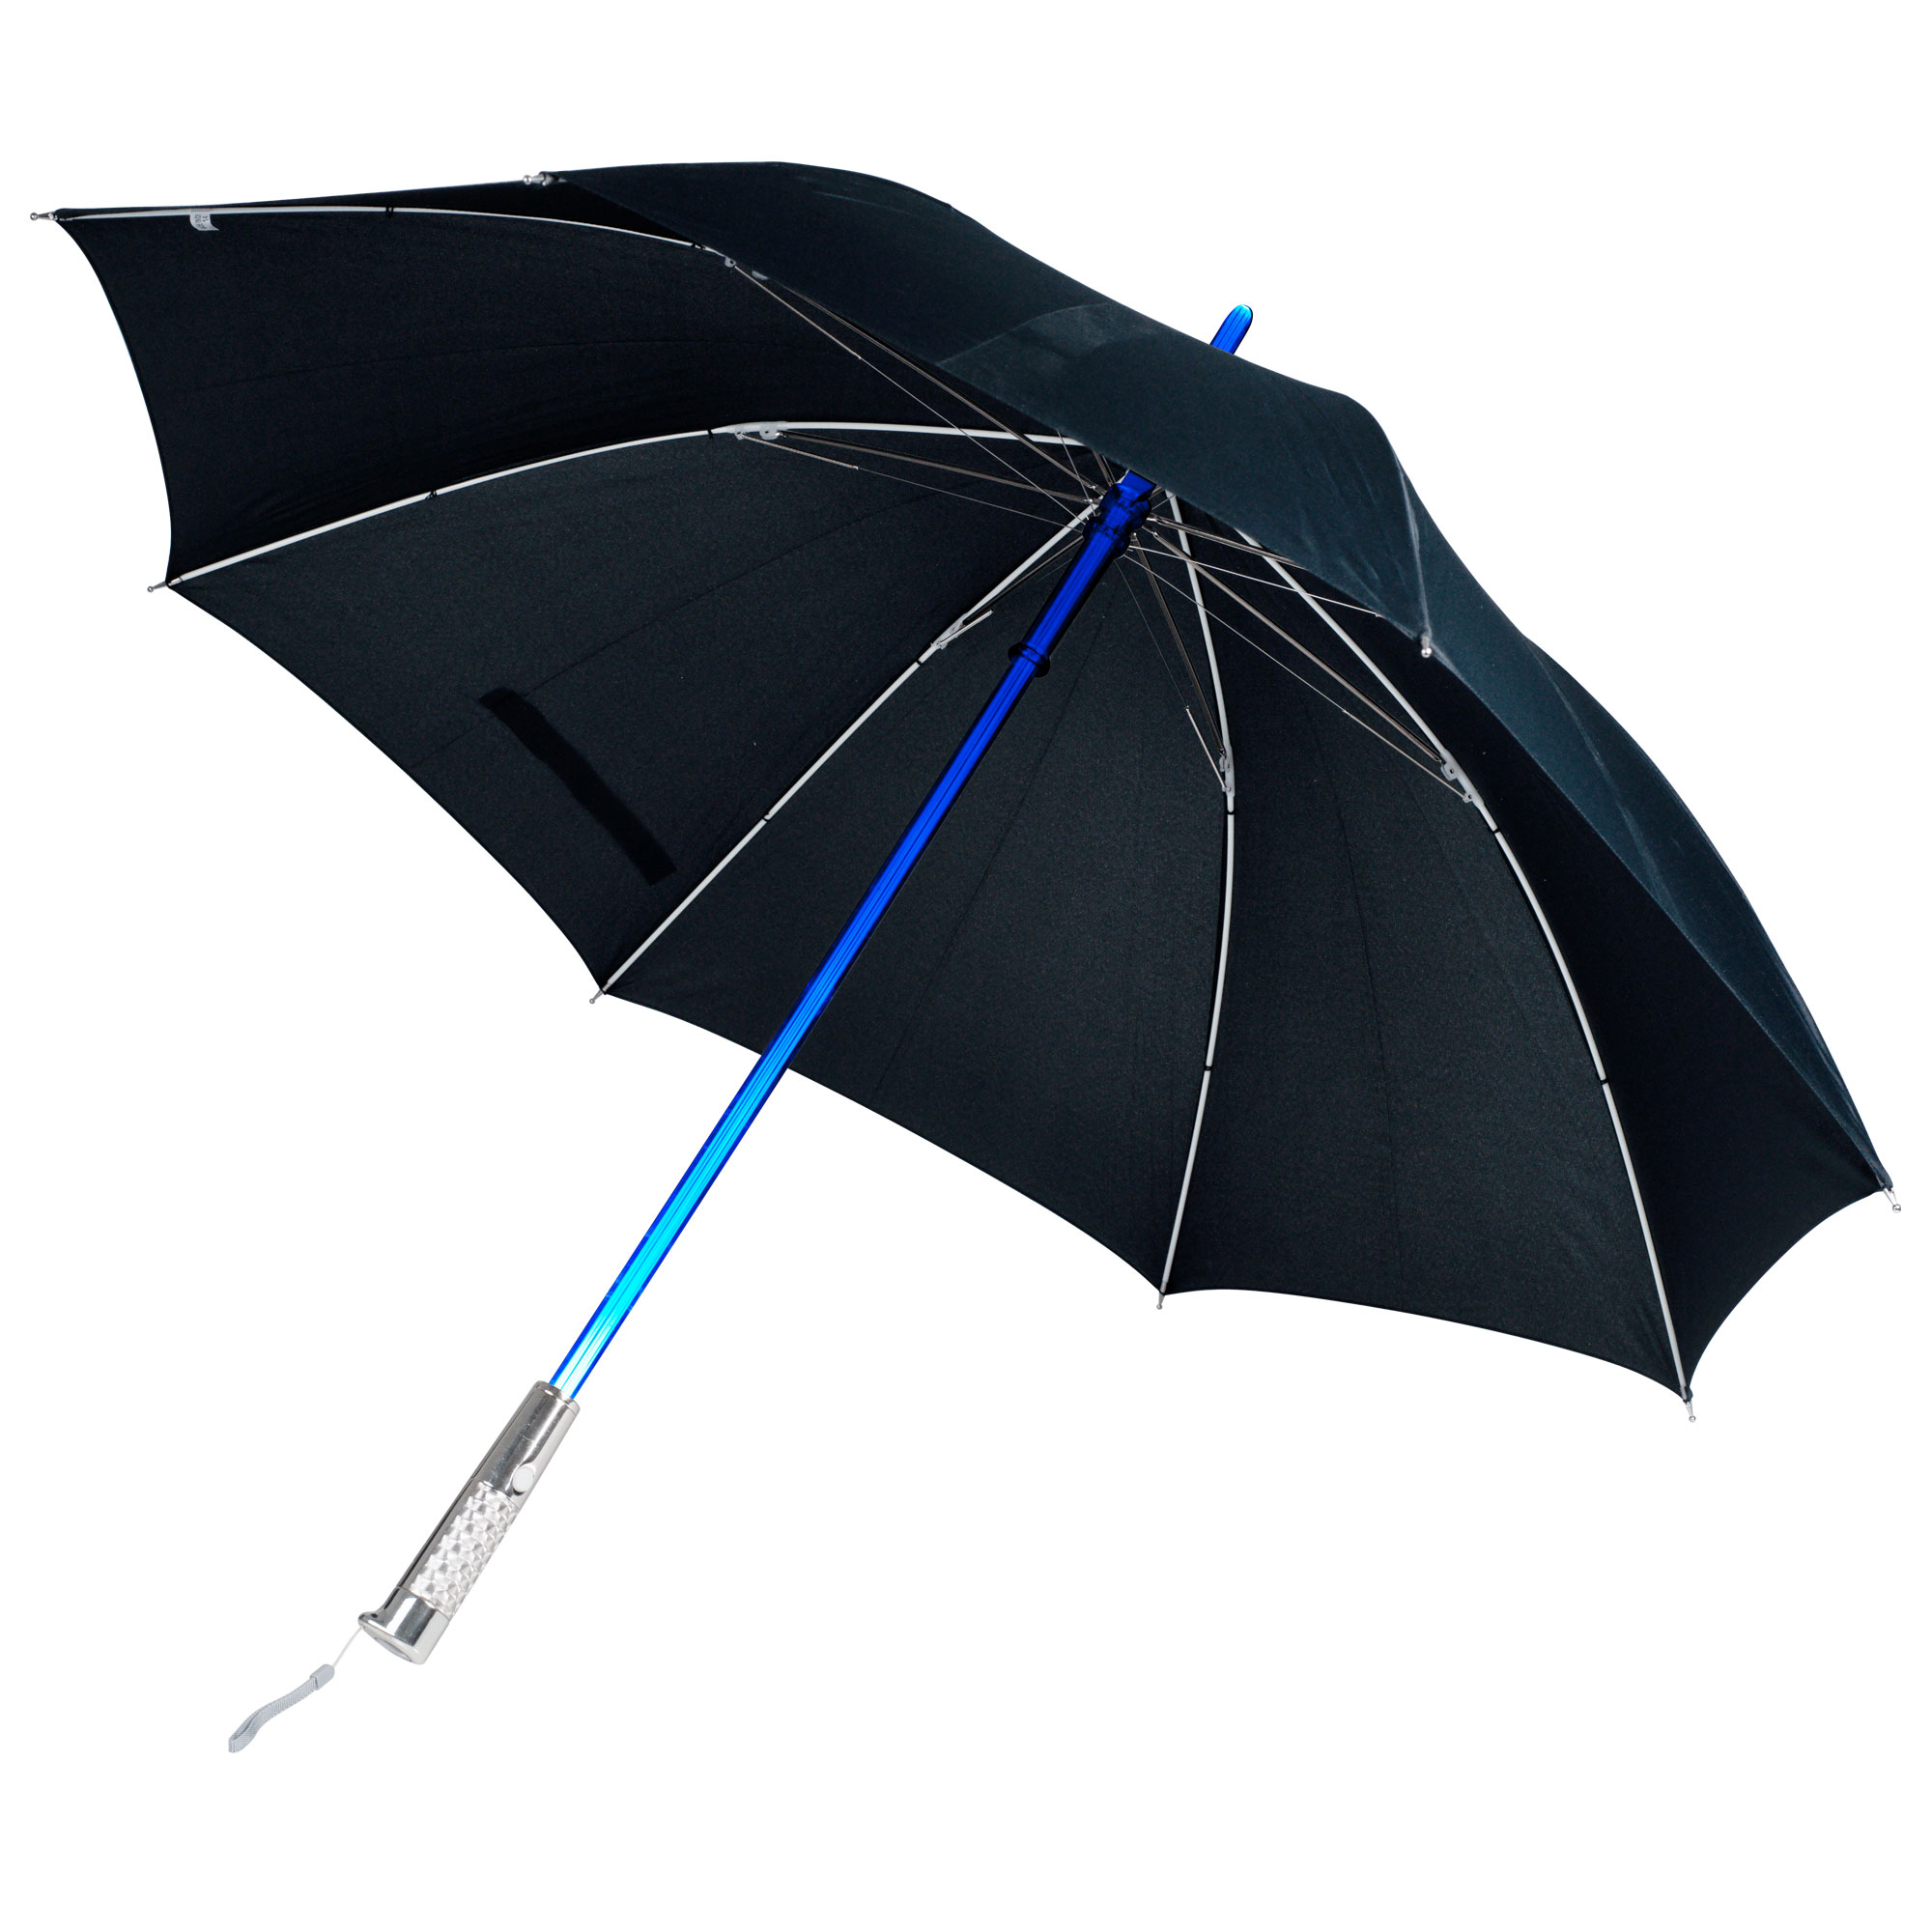 TG Unisex Black Nylon Color Changing LED Umbrella/Flashlight